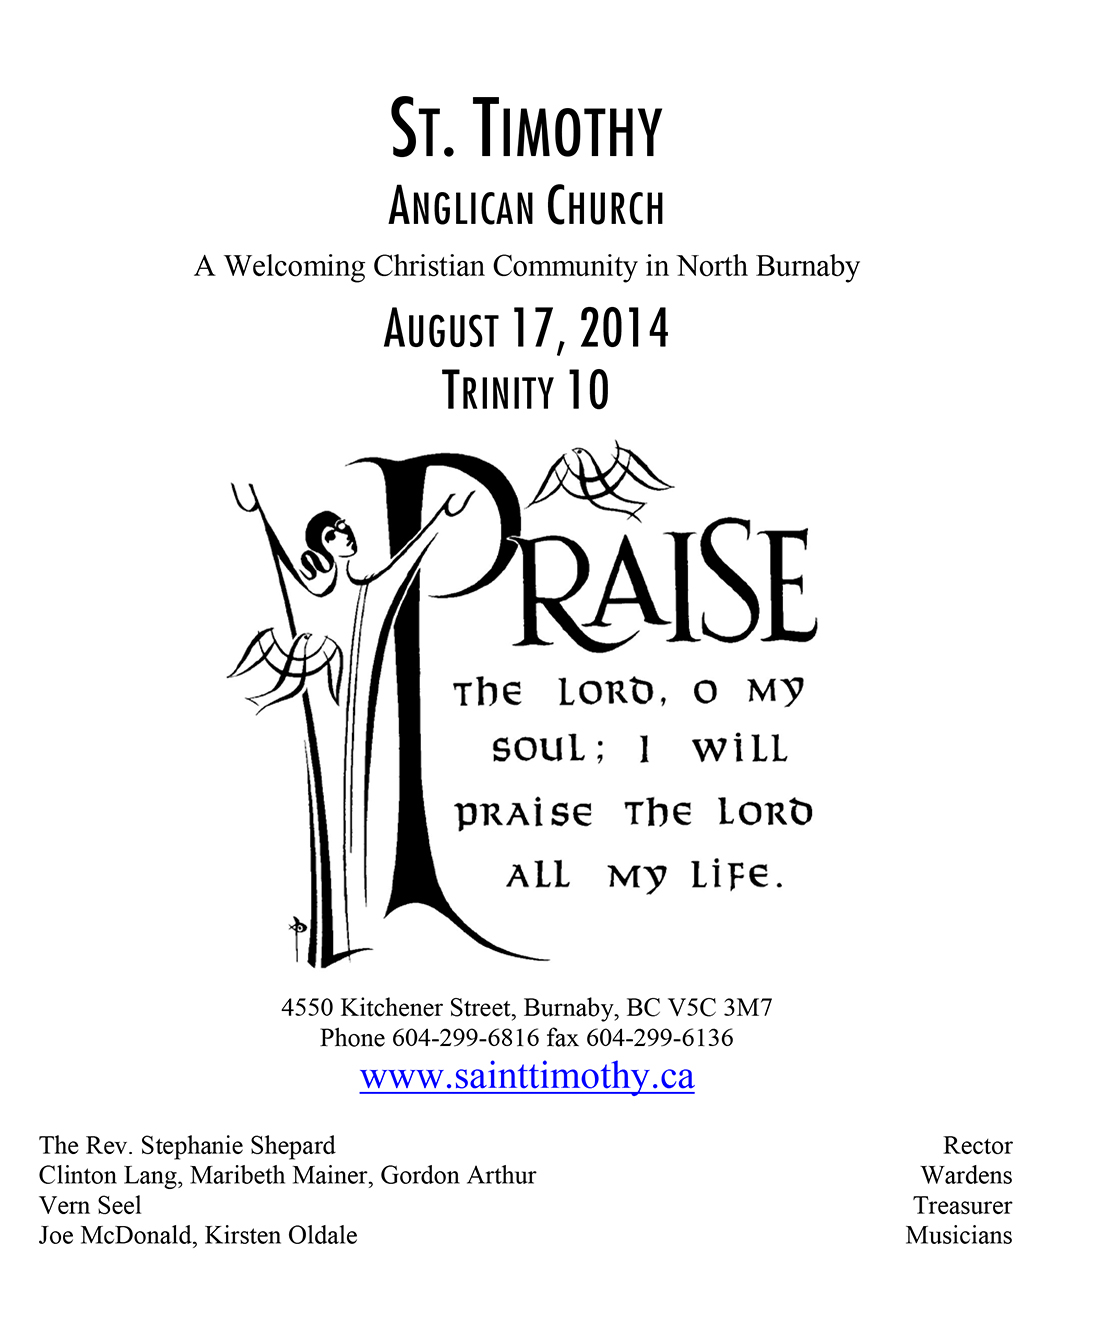 Bulletin: August 17, 2014